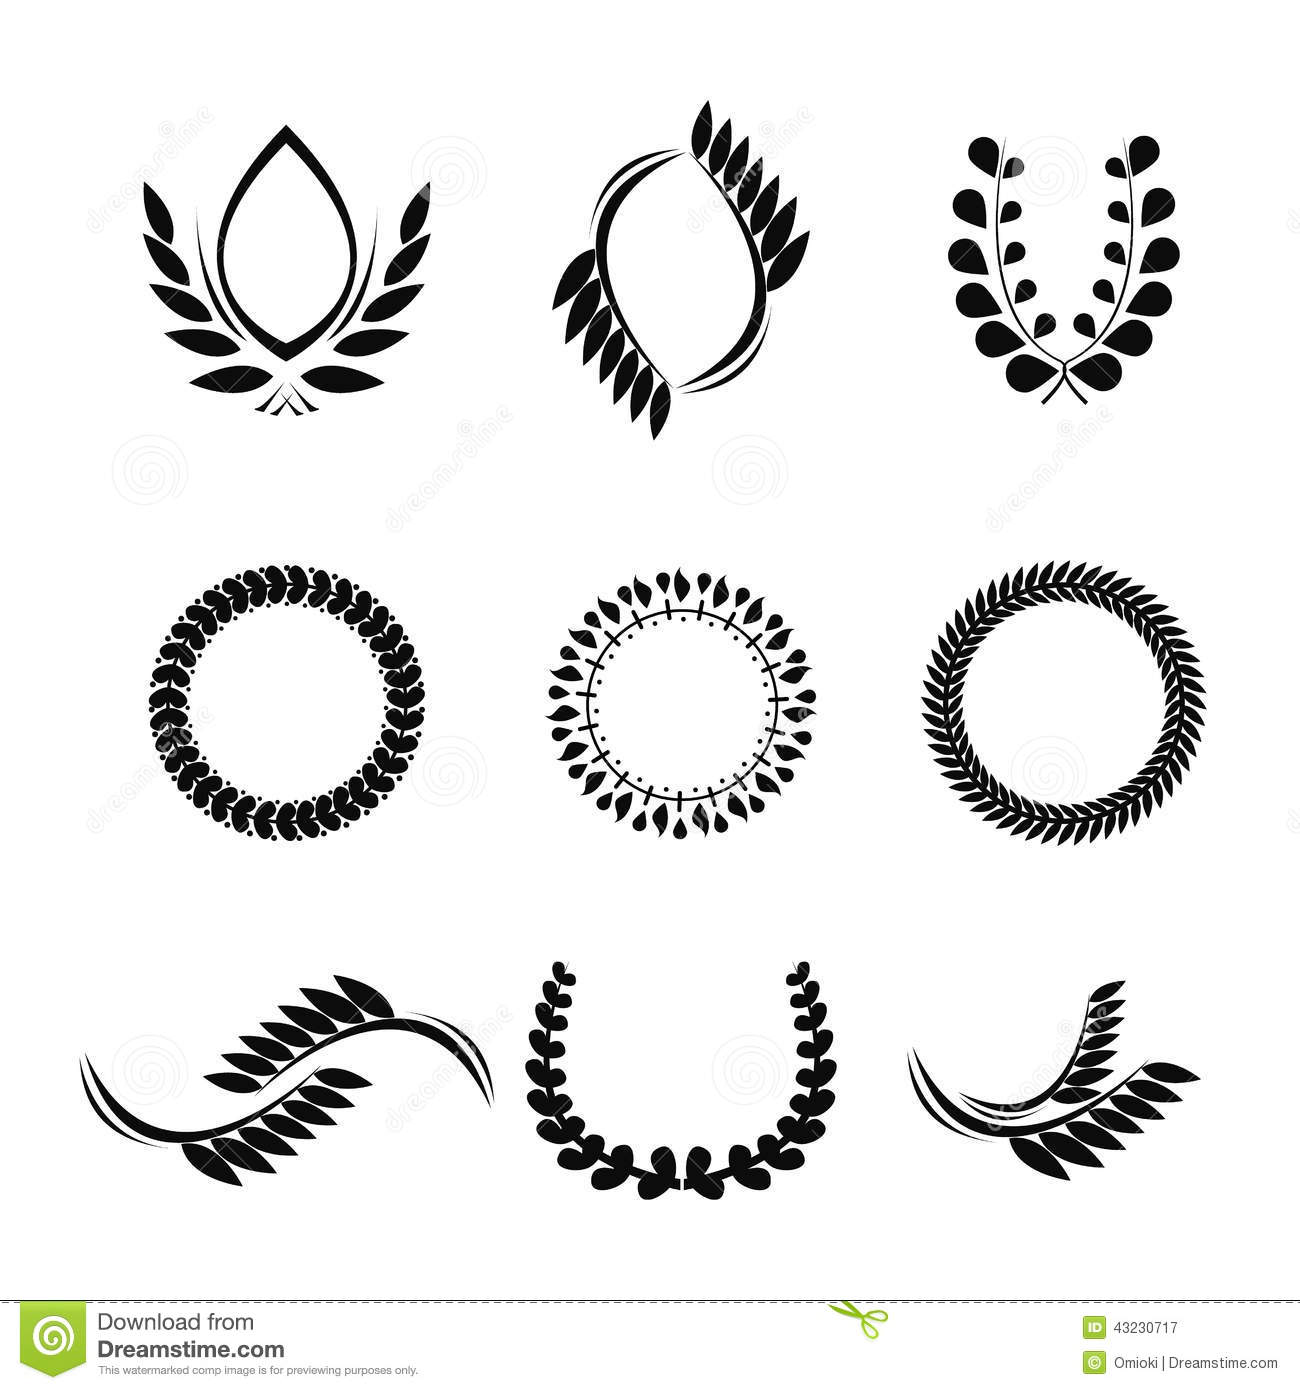 Counting And Ten Frames And Letter Formation moreover Royalty Free Stock Images Puzzle Texture Image9256659 as well Tag Dessin Squelette Imprimer likewise Alpine Skiing Colouring Page moreover Printable T Shirt Template. on who will win template